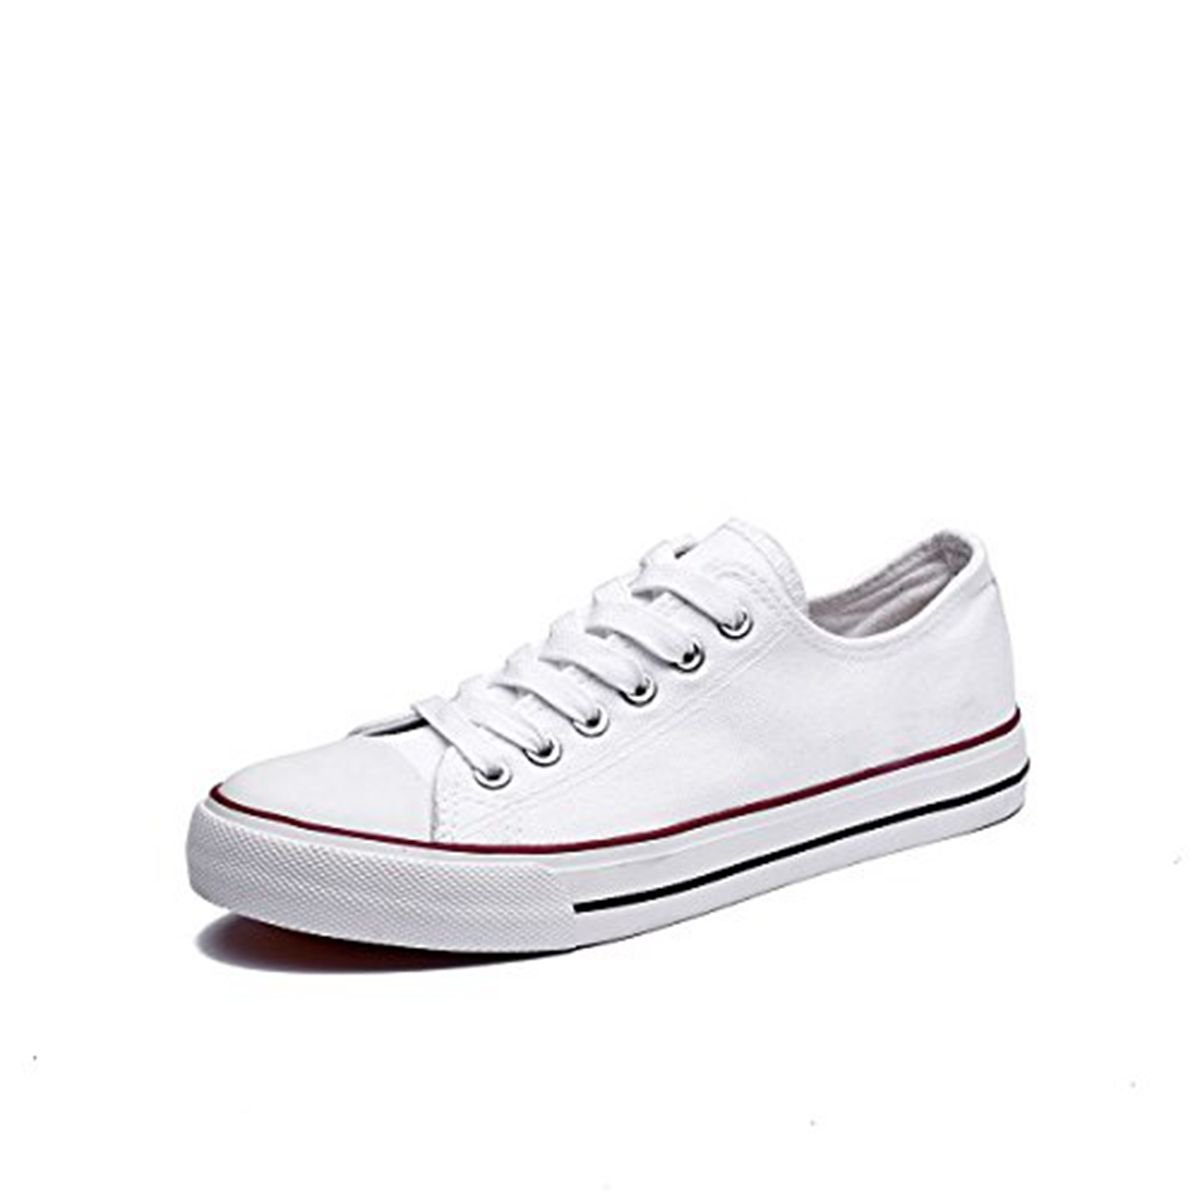 Adokoo Women's Canvas Shoes Casual Sneakers Low Cut Lace up Fashion Comfortable for Walking White Size US6